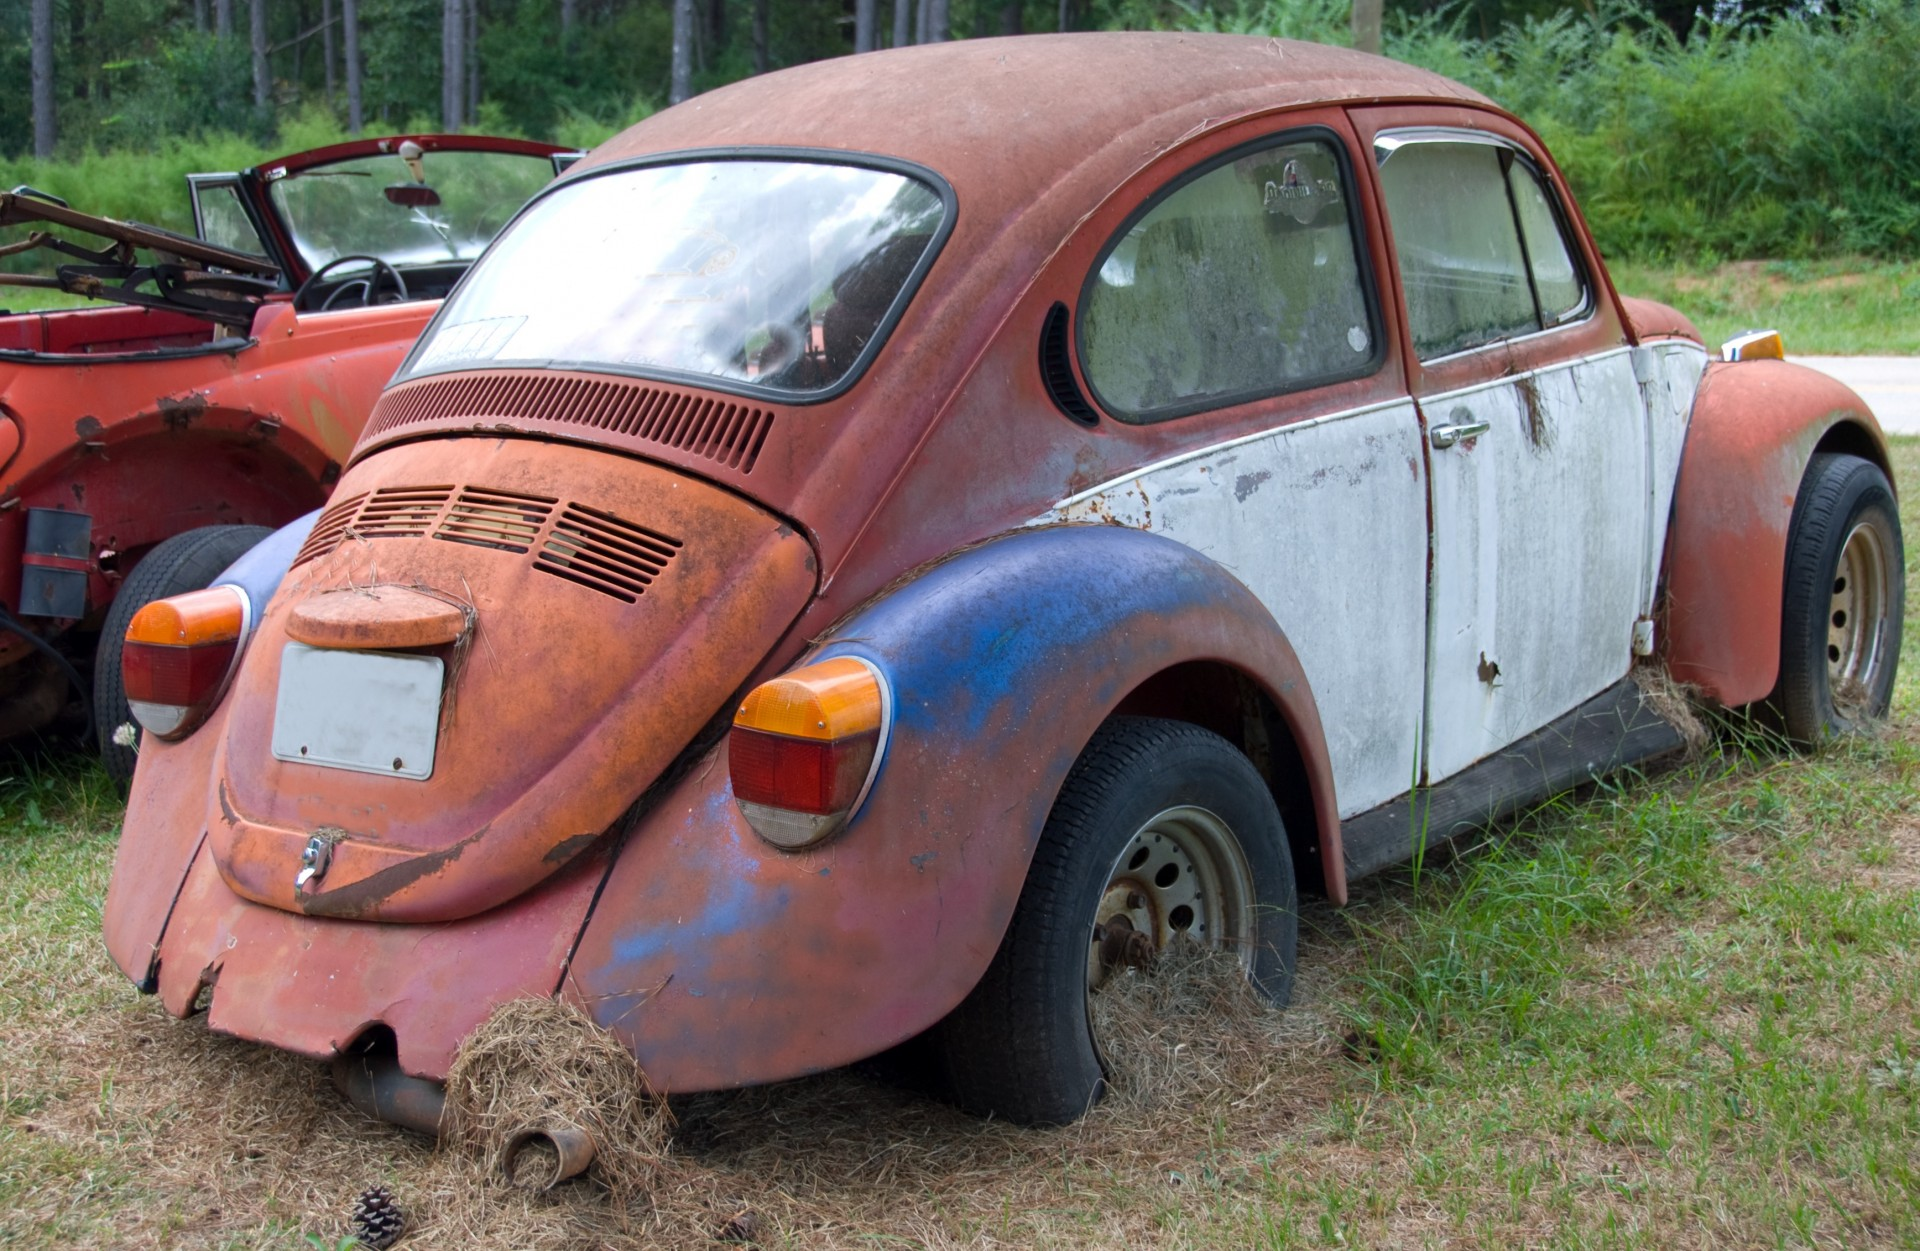 Junker Car – How Can I Get The Most Money For My Junk Car?